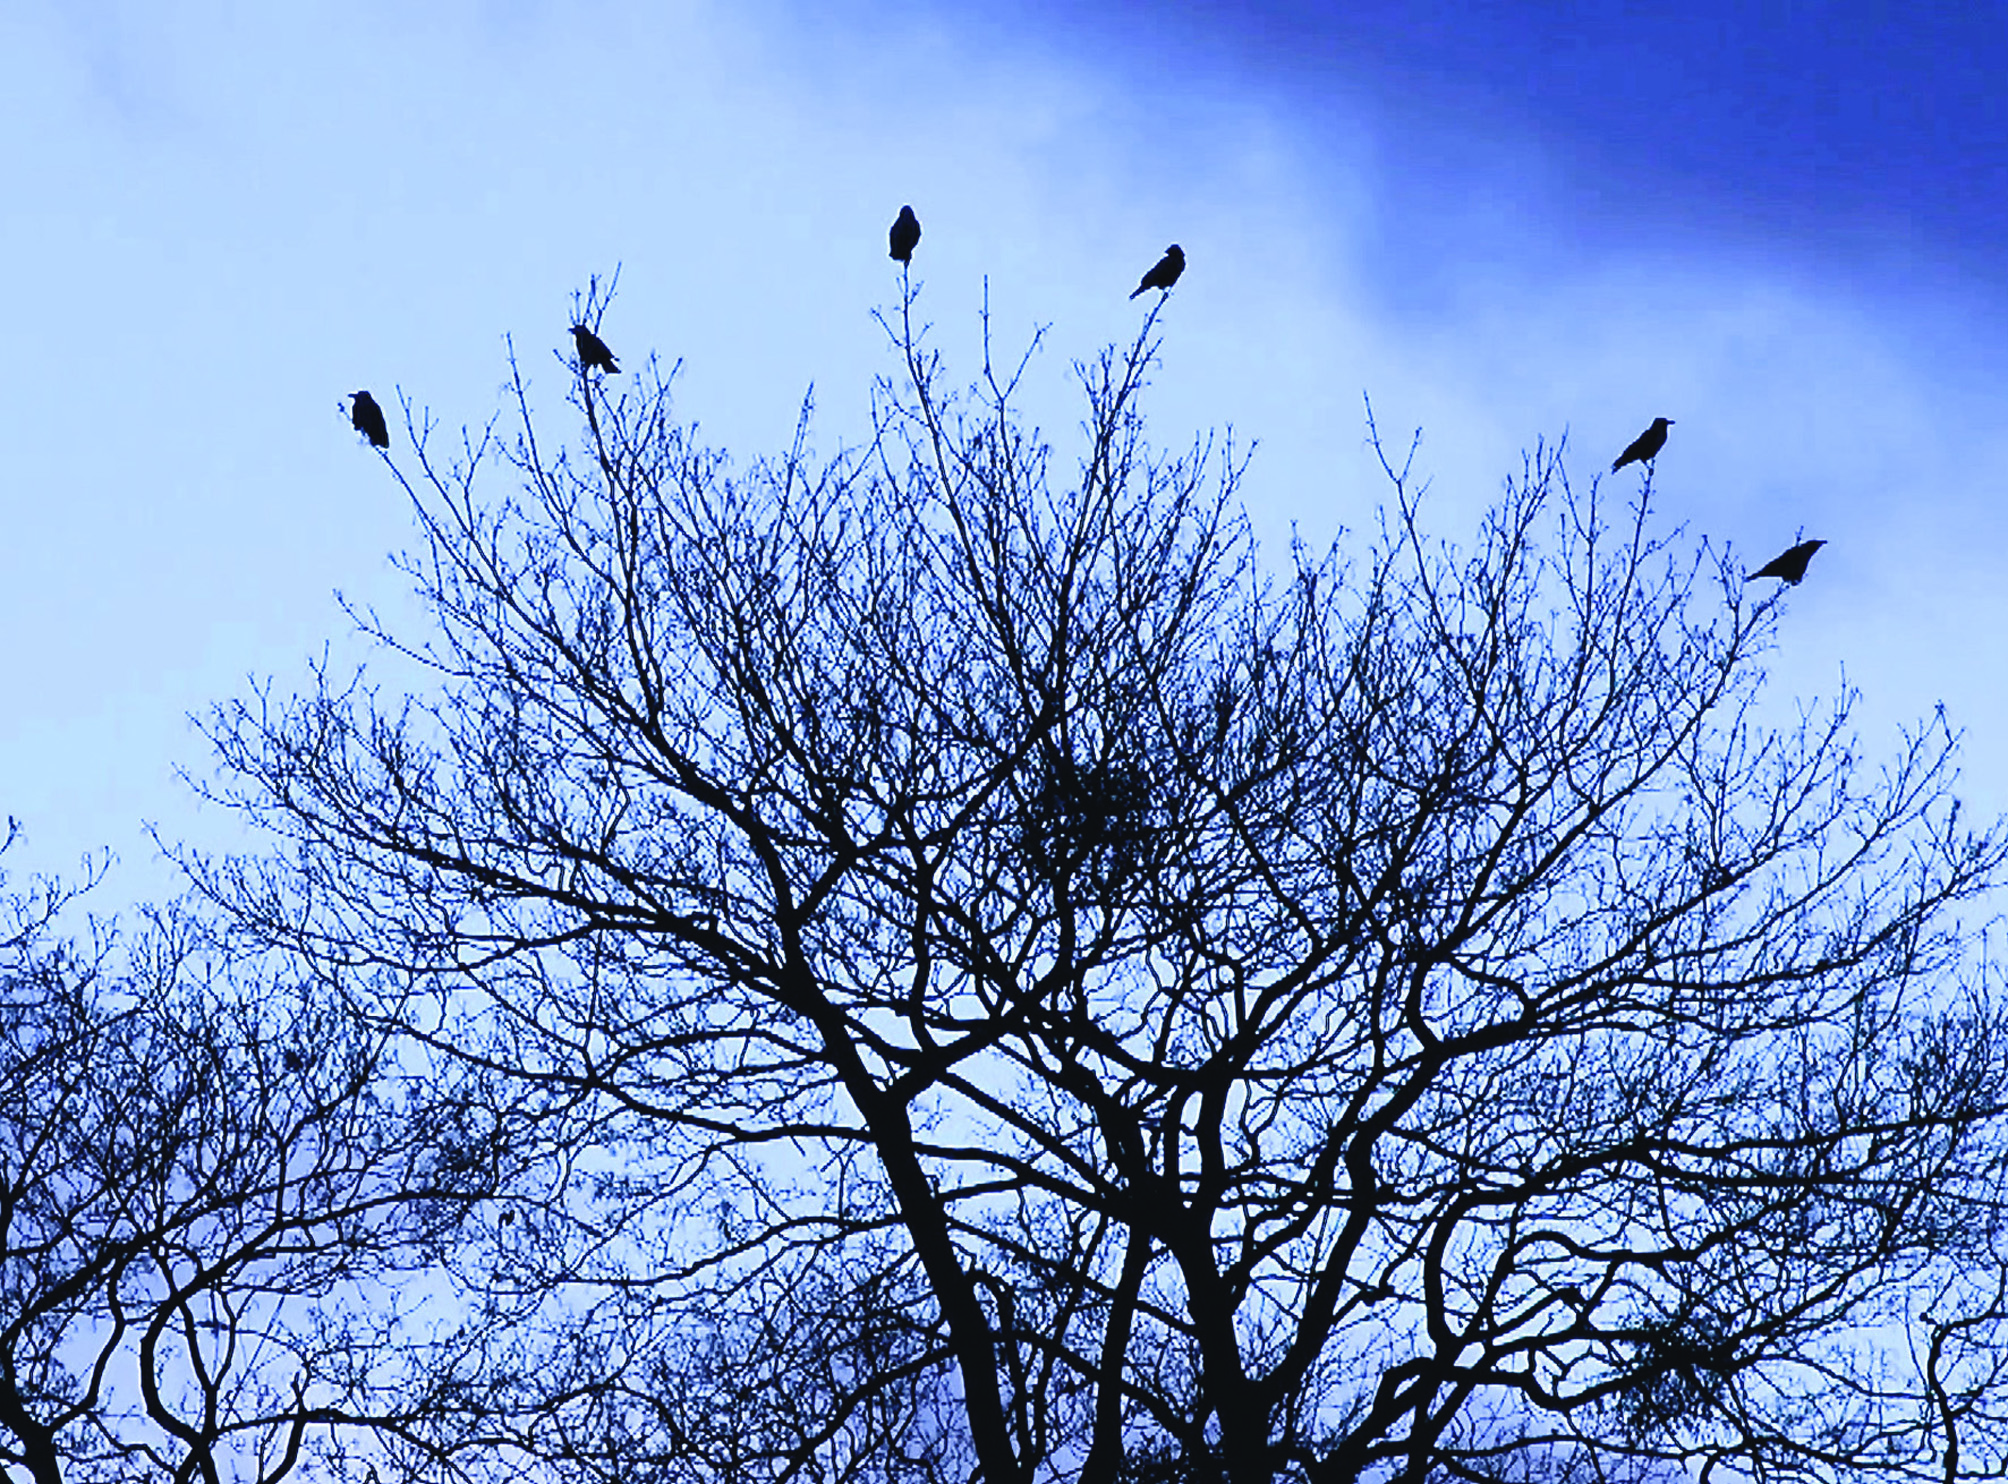 TIME OF CROWS